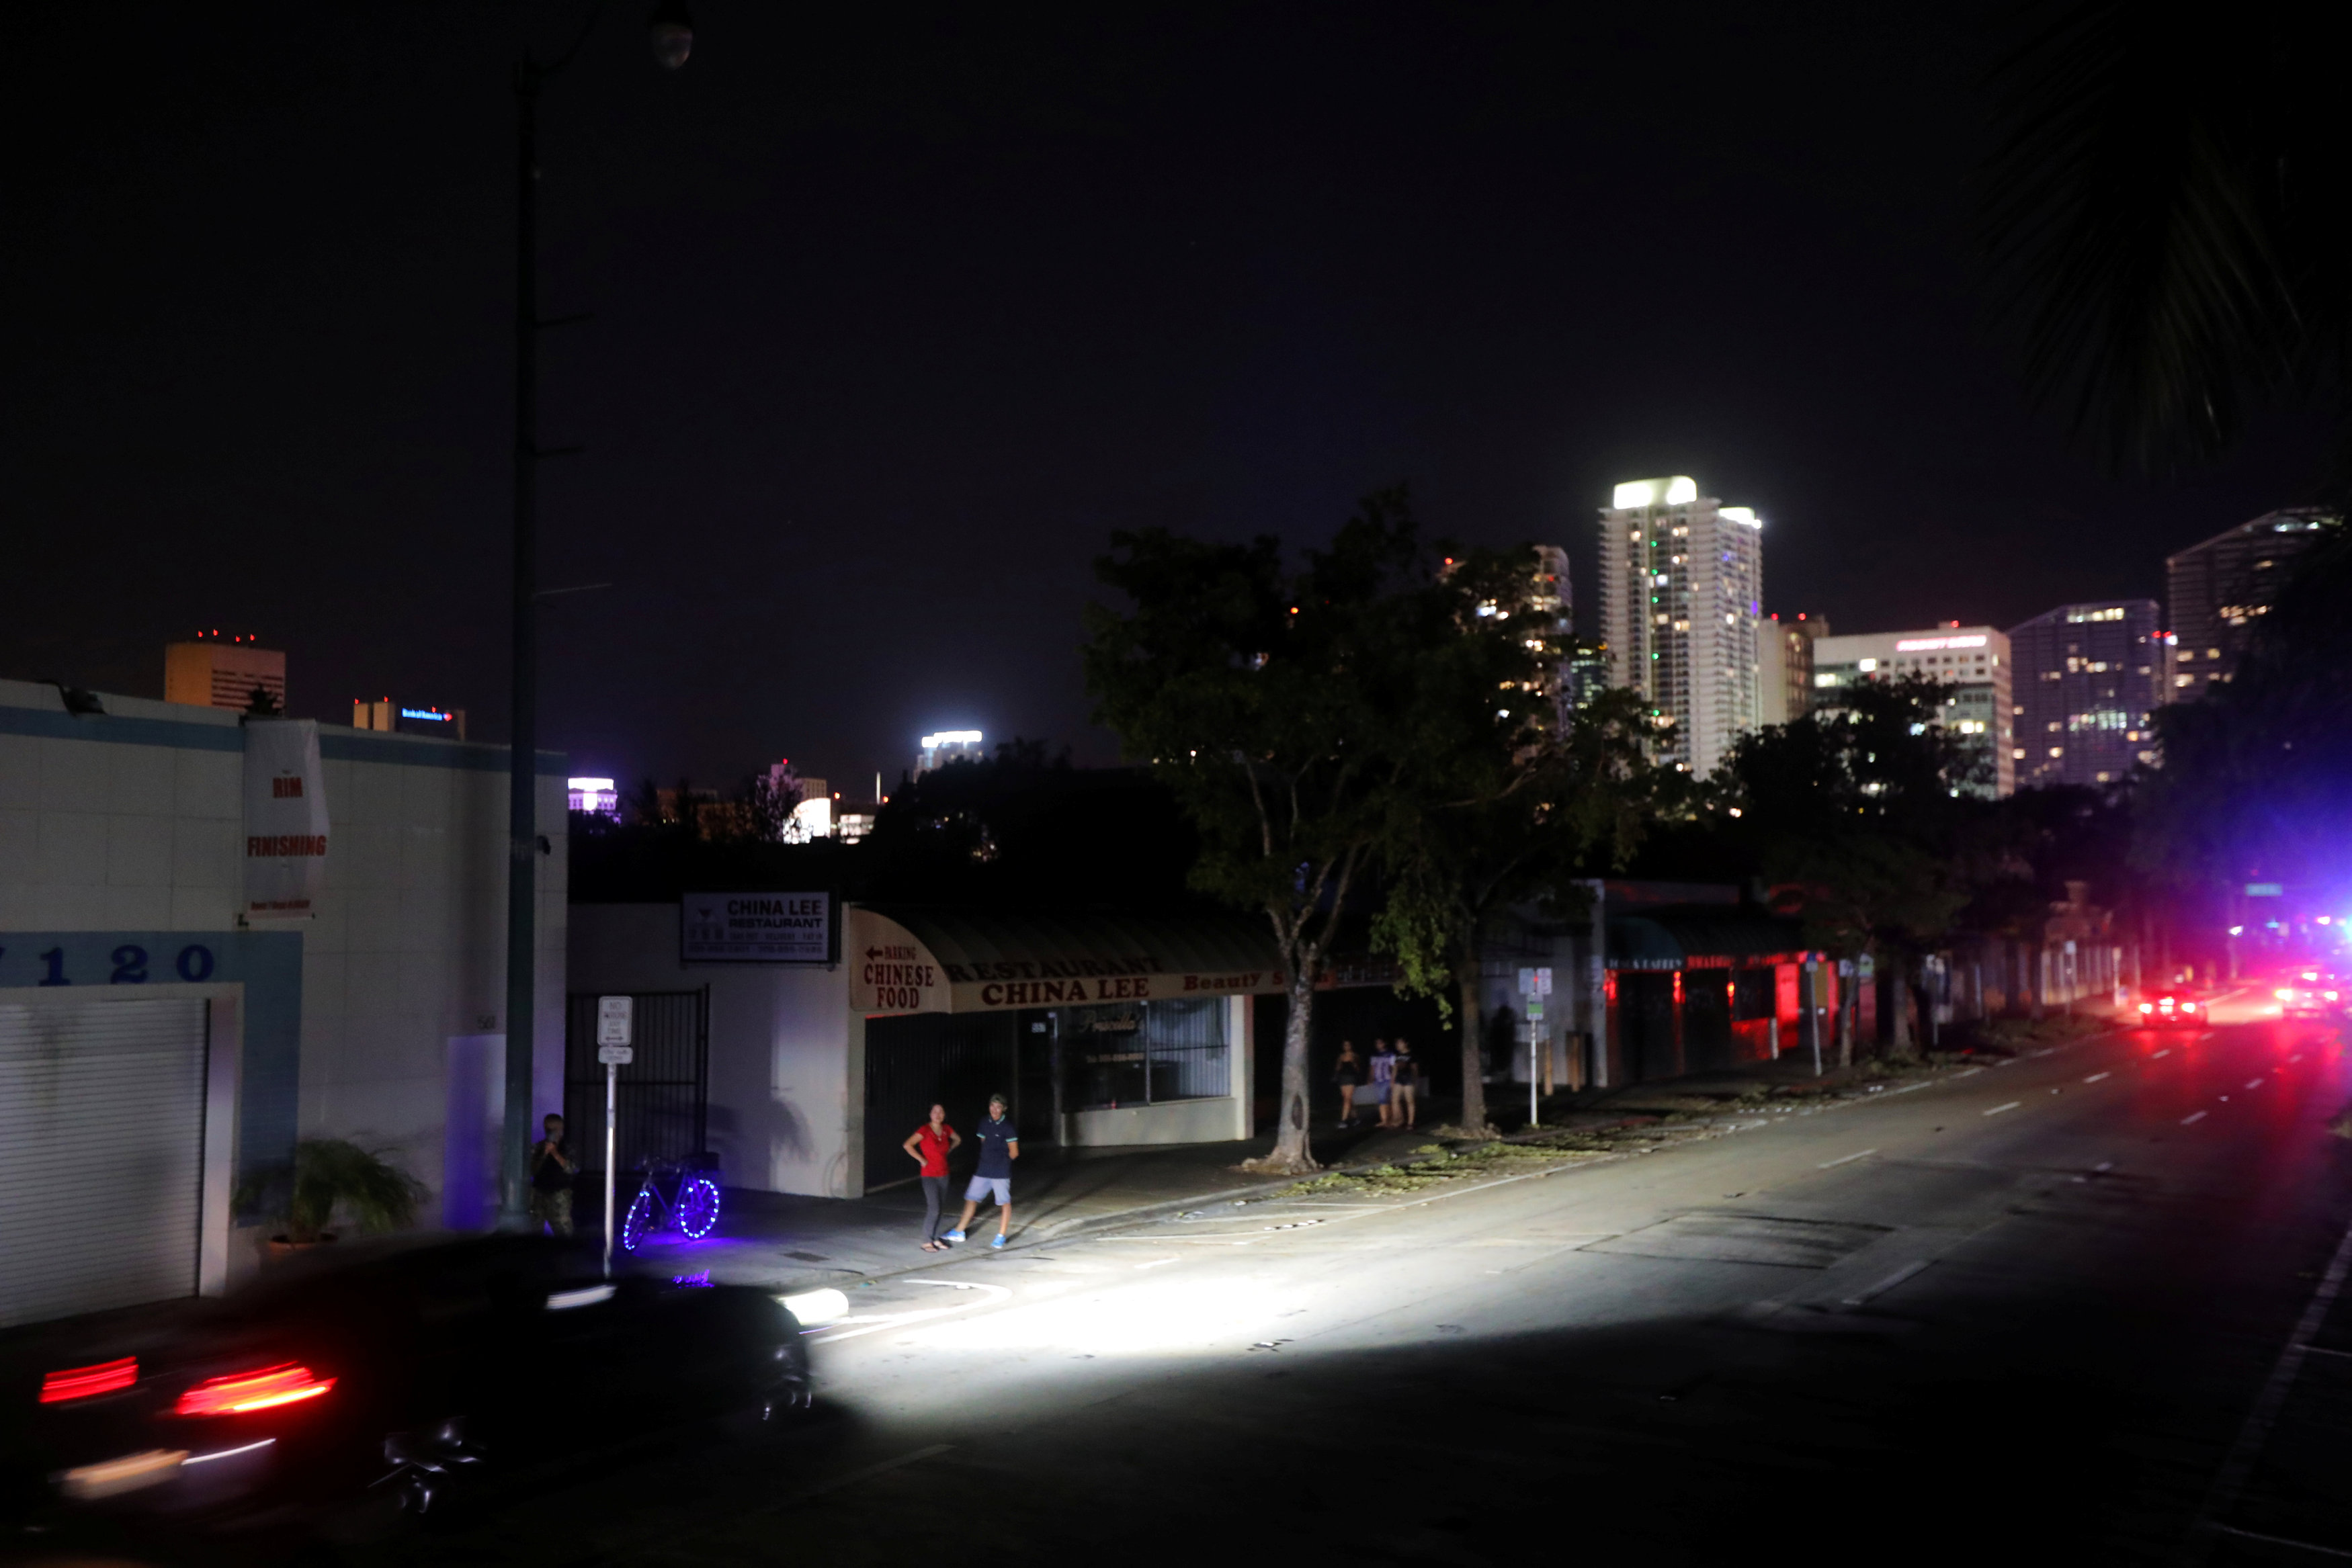 Local residents stand in the darkness as many areas of Miami still without electricity after Hurricane Irma strikes Florida, in Little Havana, Miami, Florida on Sept. 11, 2017. (REUTERS/Carlos Barria)